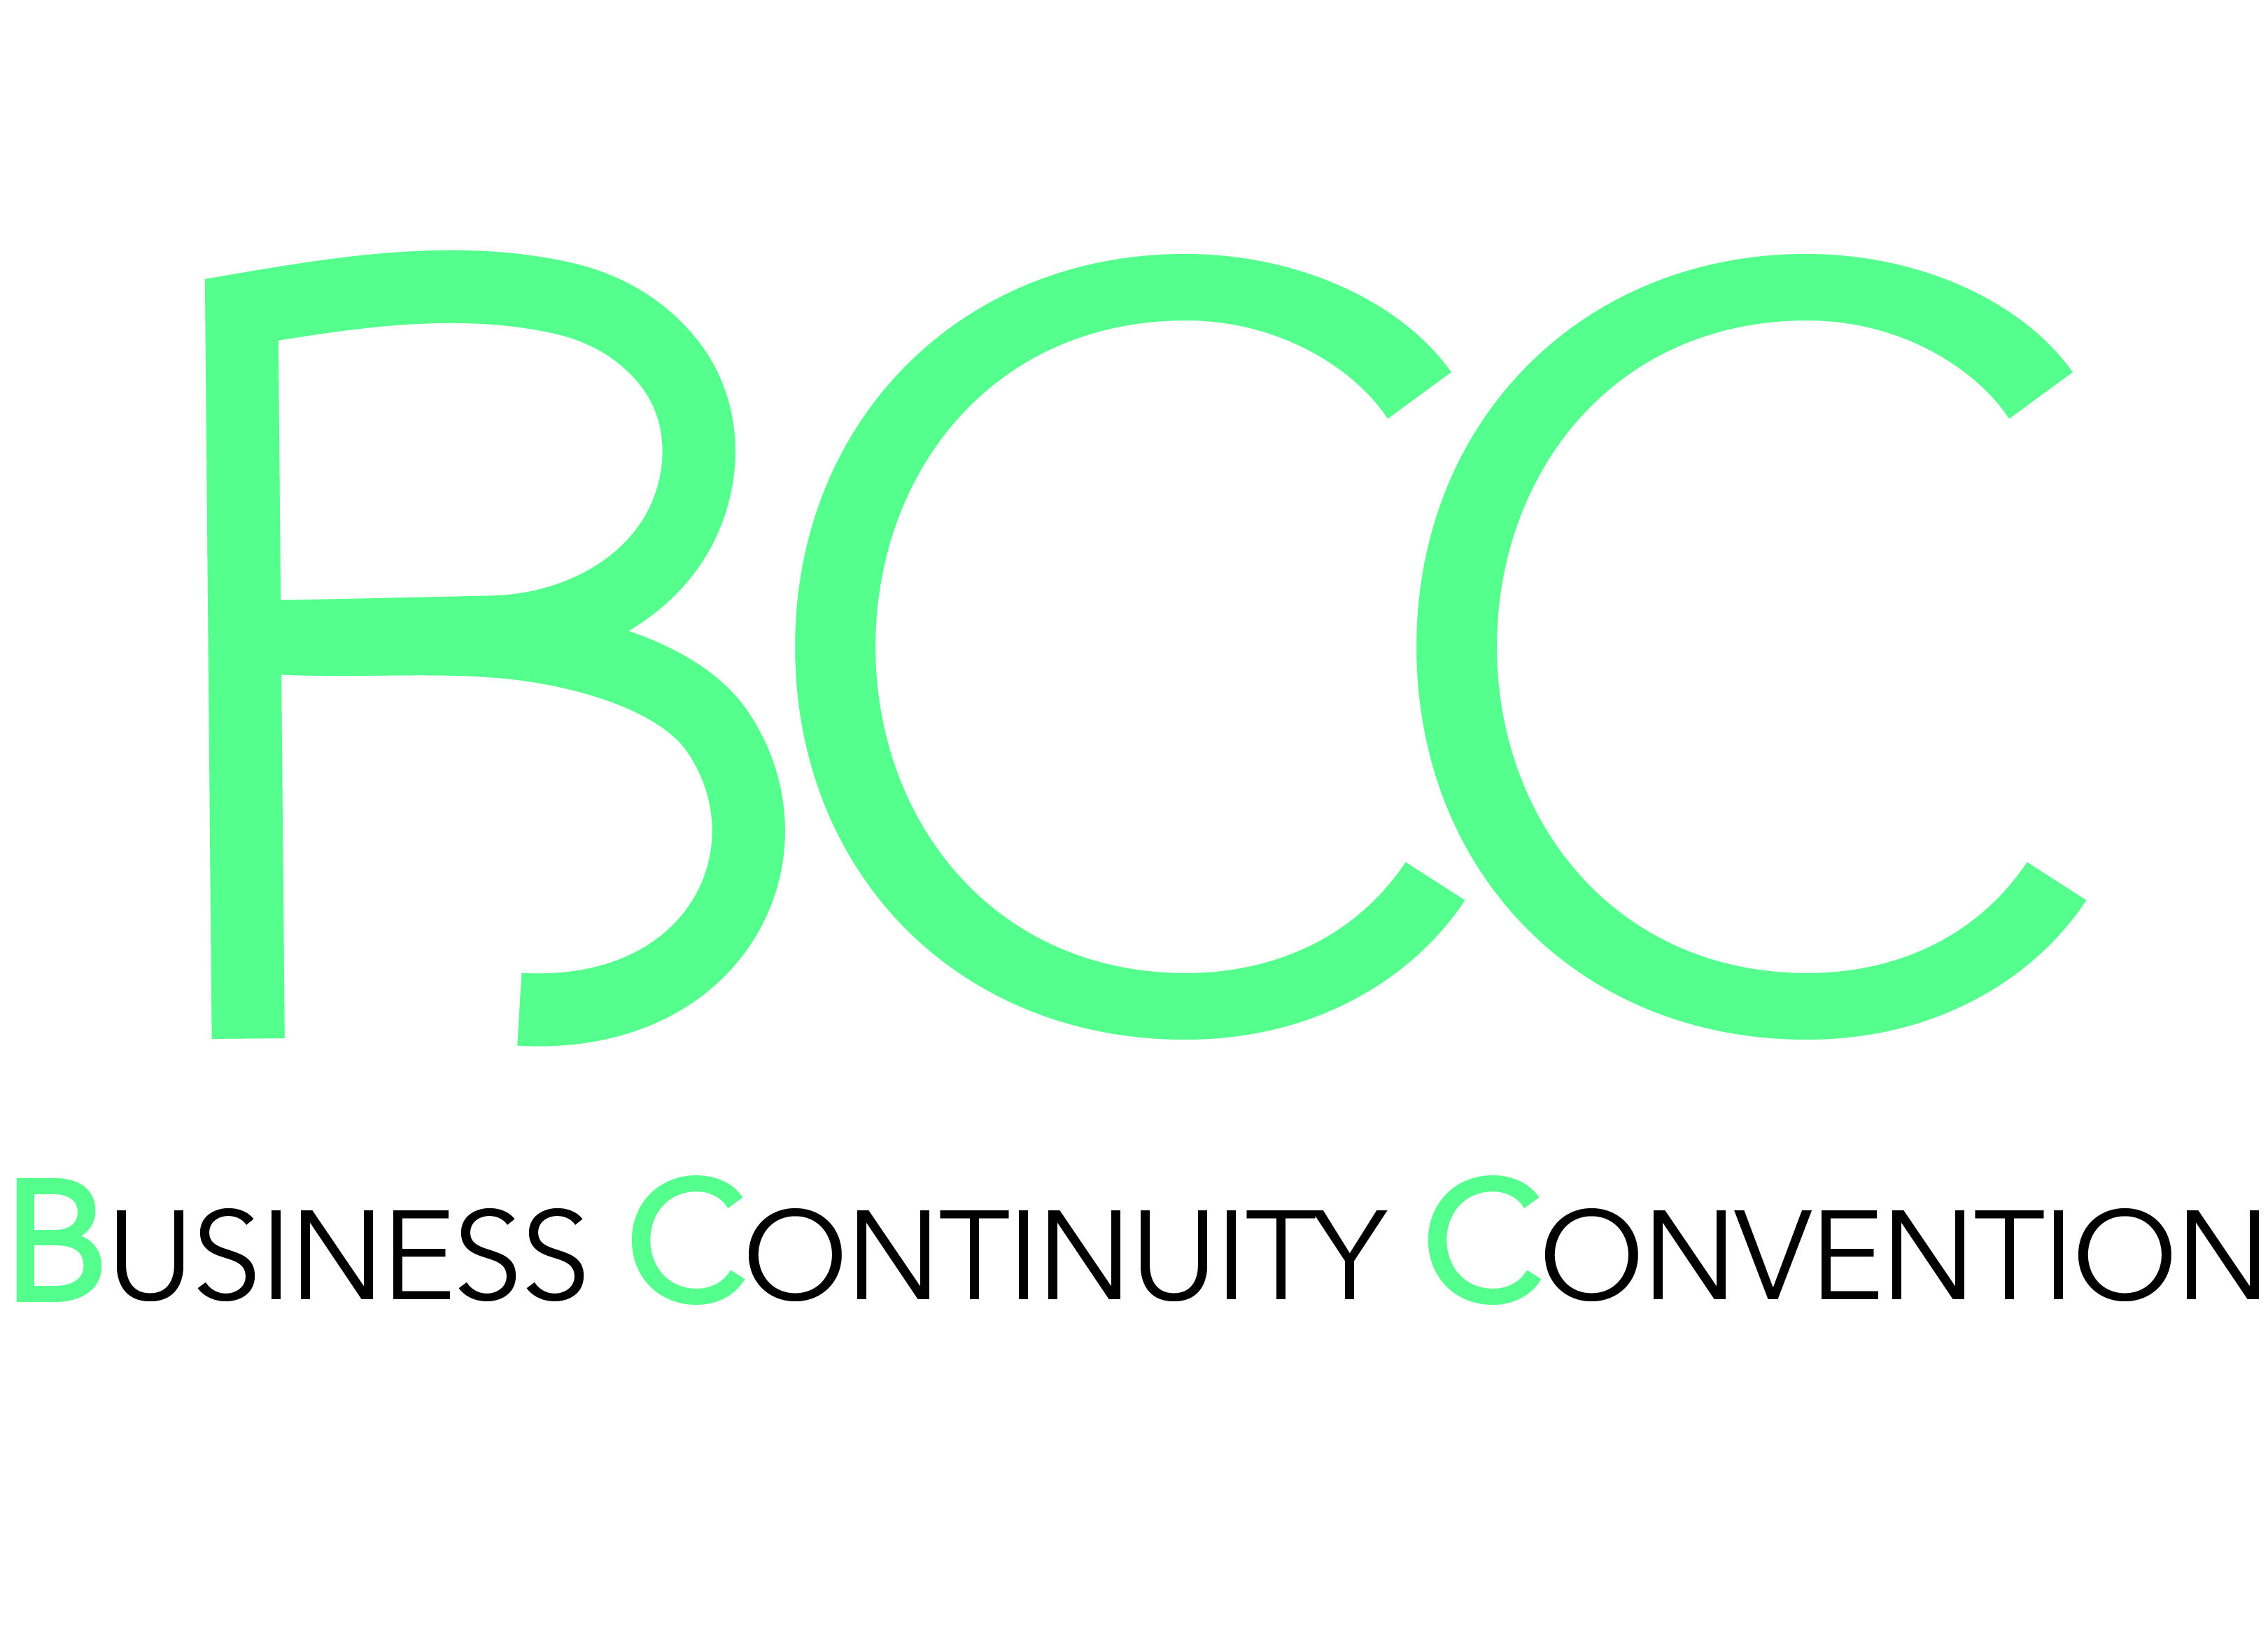 Business Continuity Convention